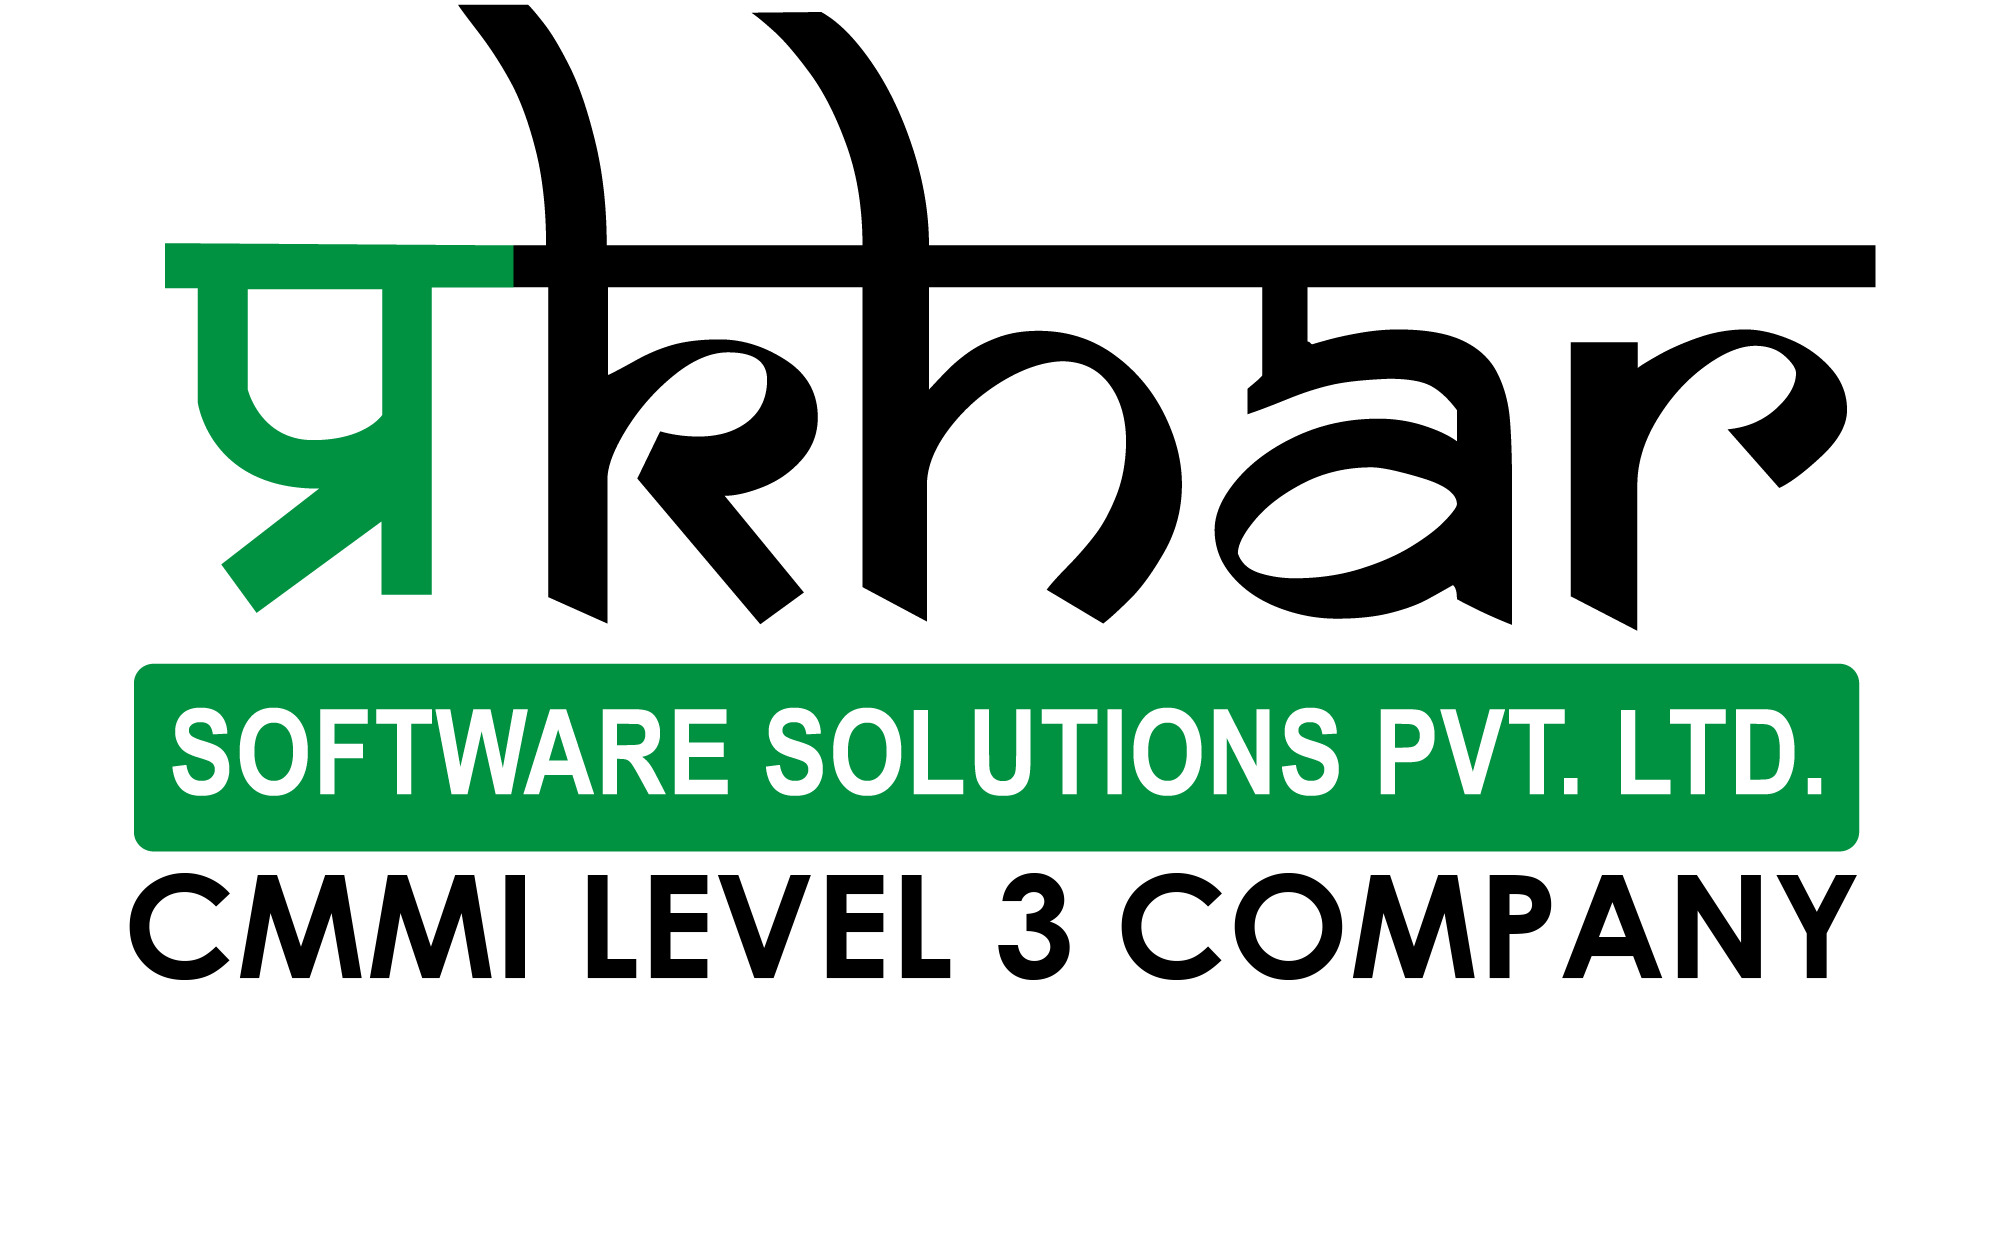 Prakhar Software Solutions Pvt Ltd - Outsourcing company logo